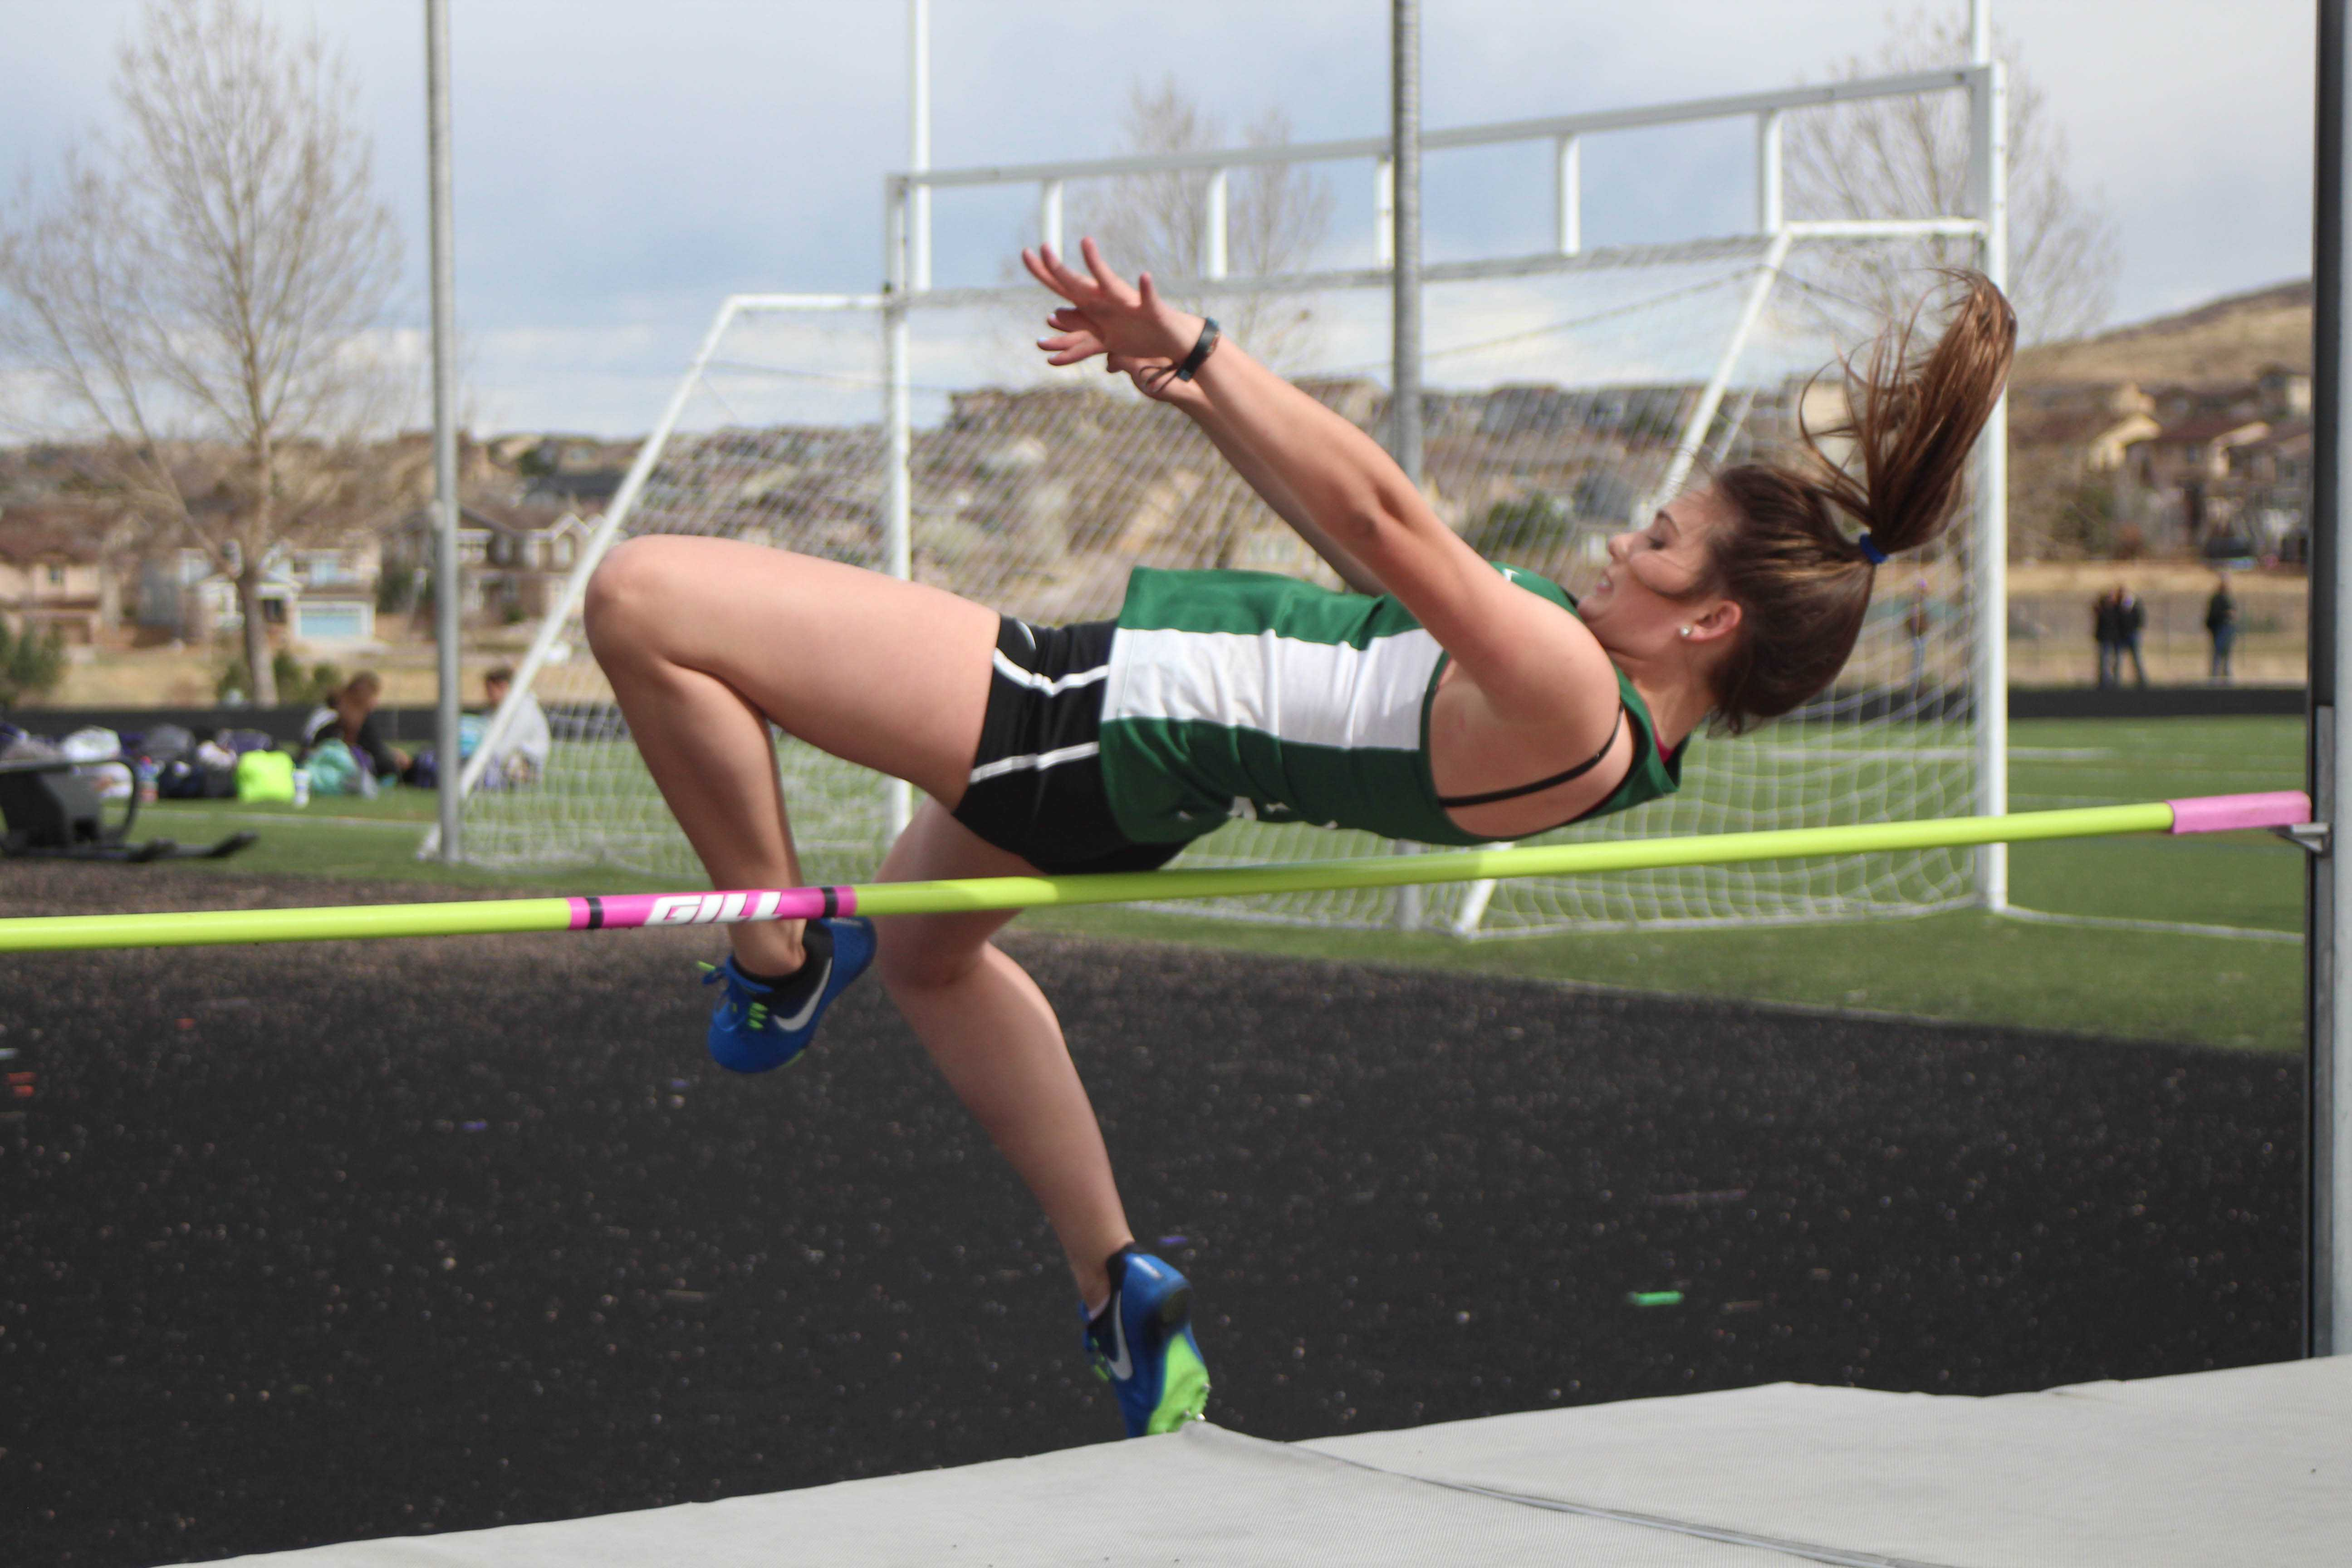 PHOTOS: Vista JV Track and Field Meet